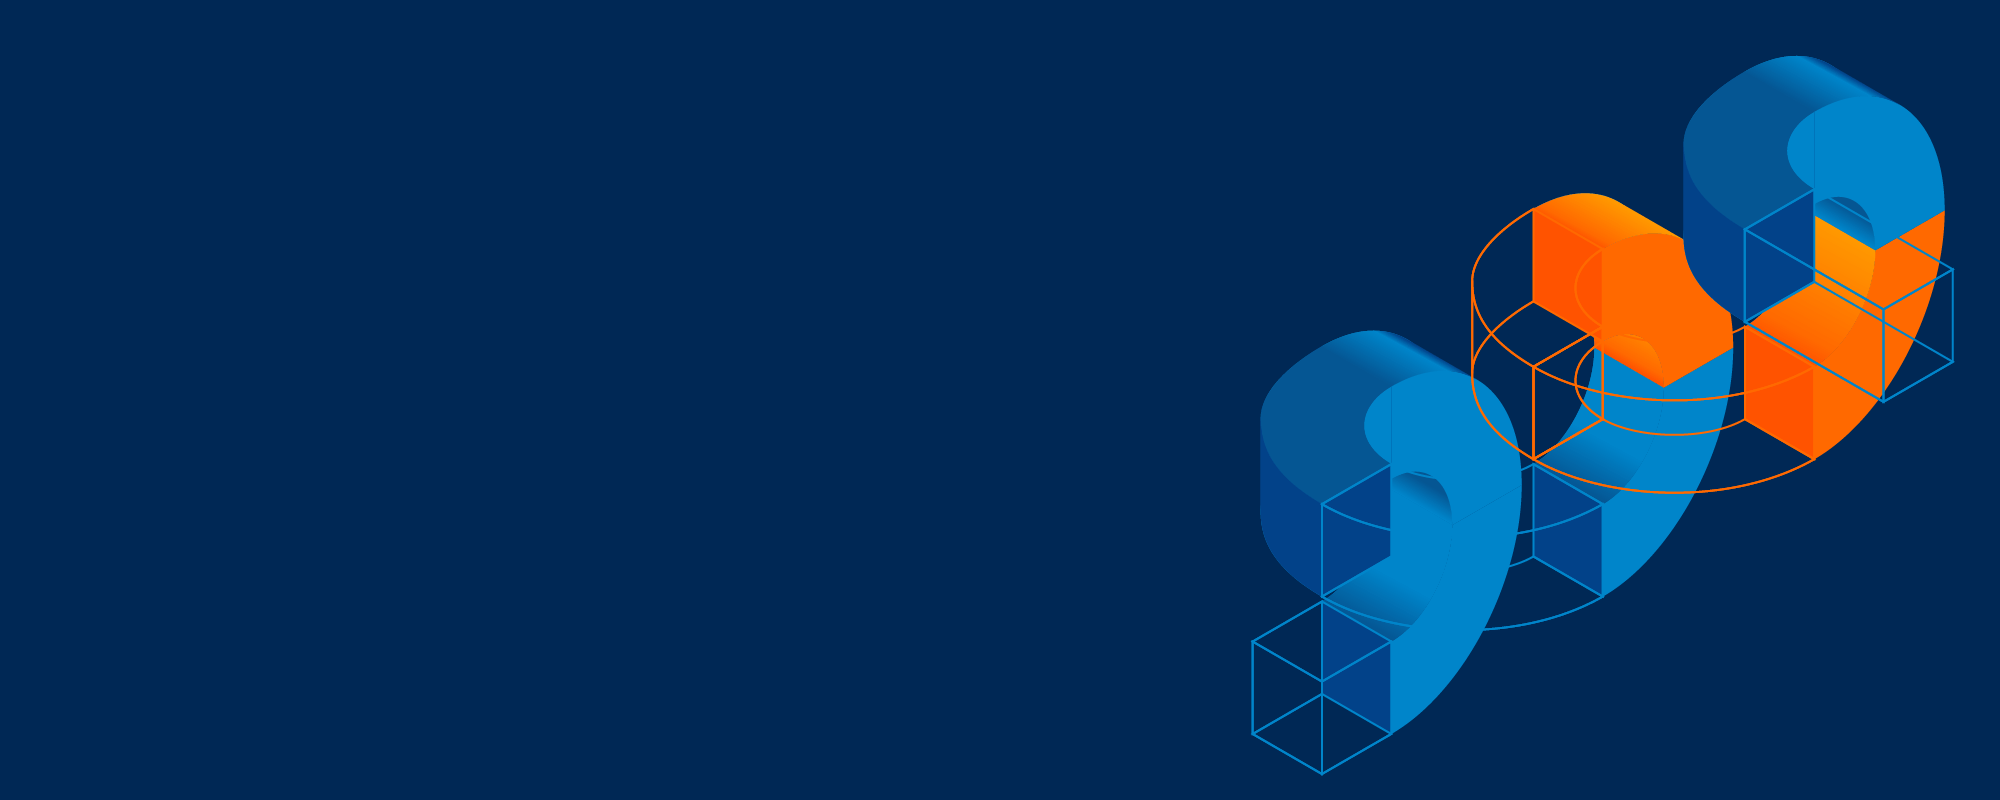 UiPath 2019.9 Monthly Product Update | UiPath